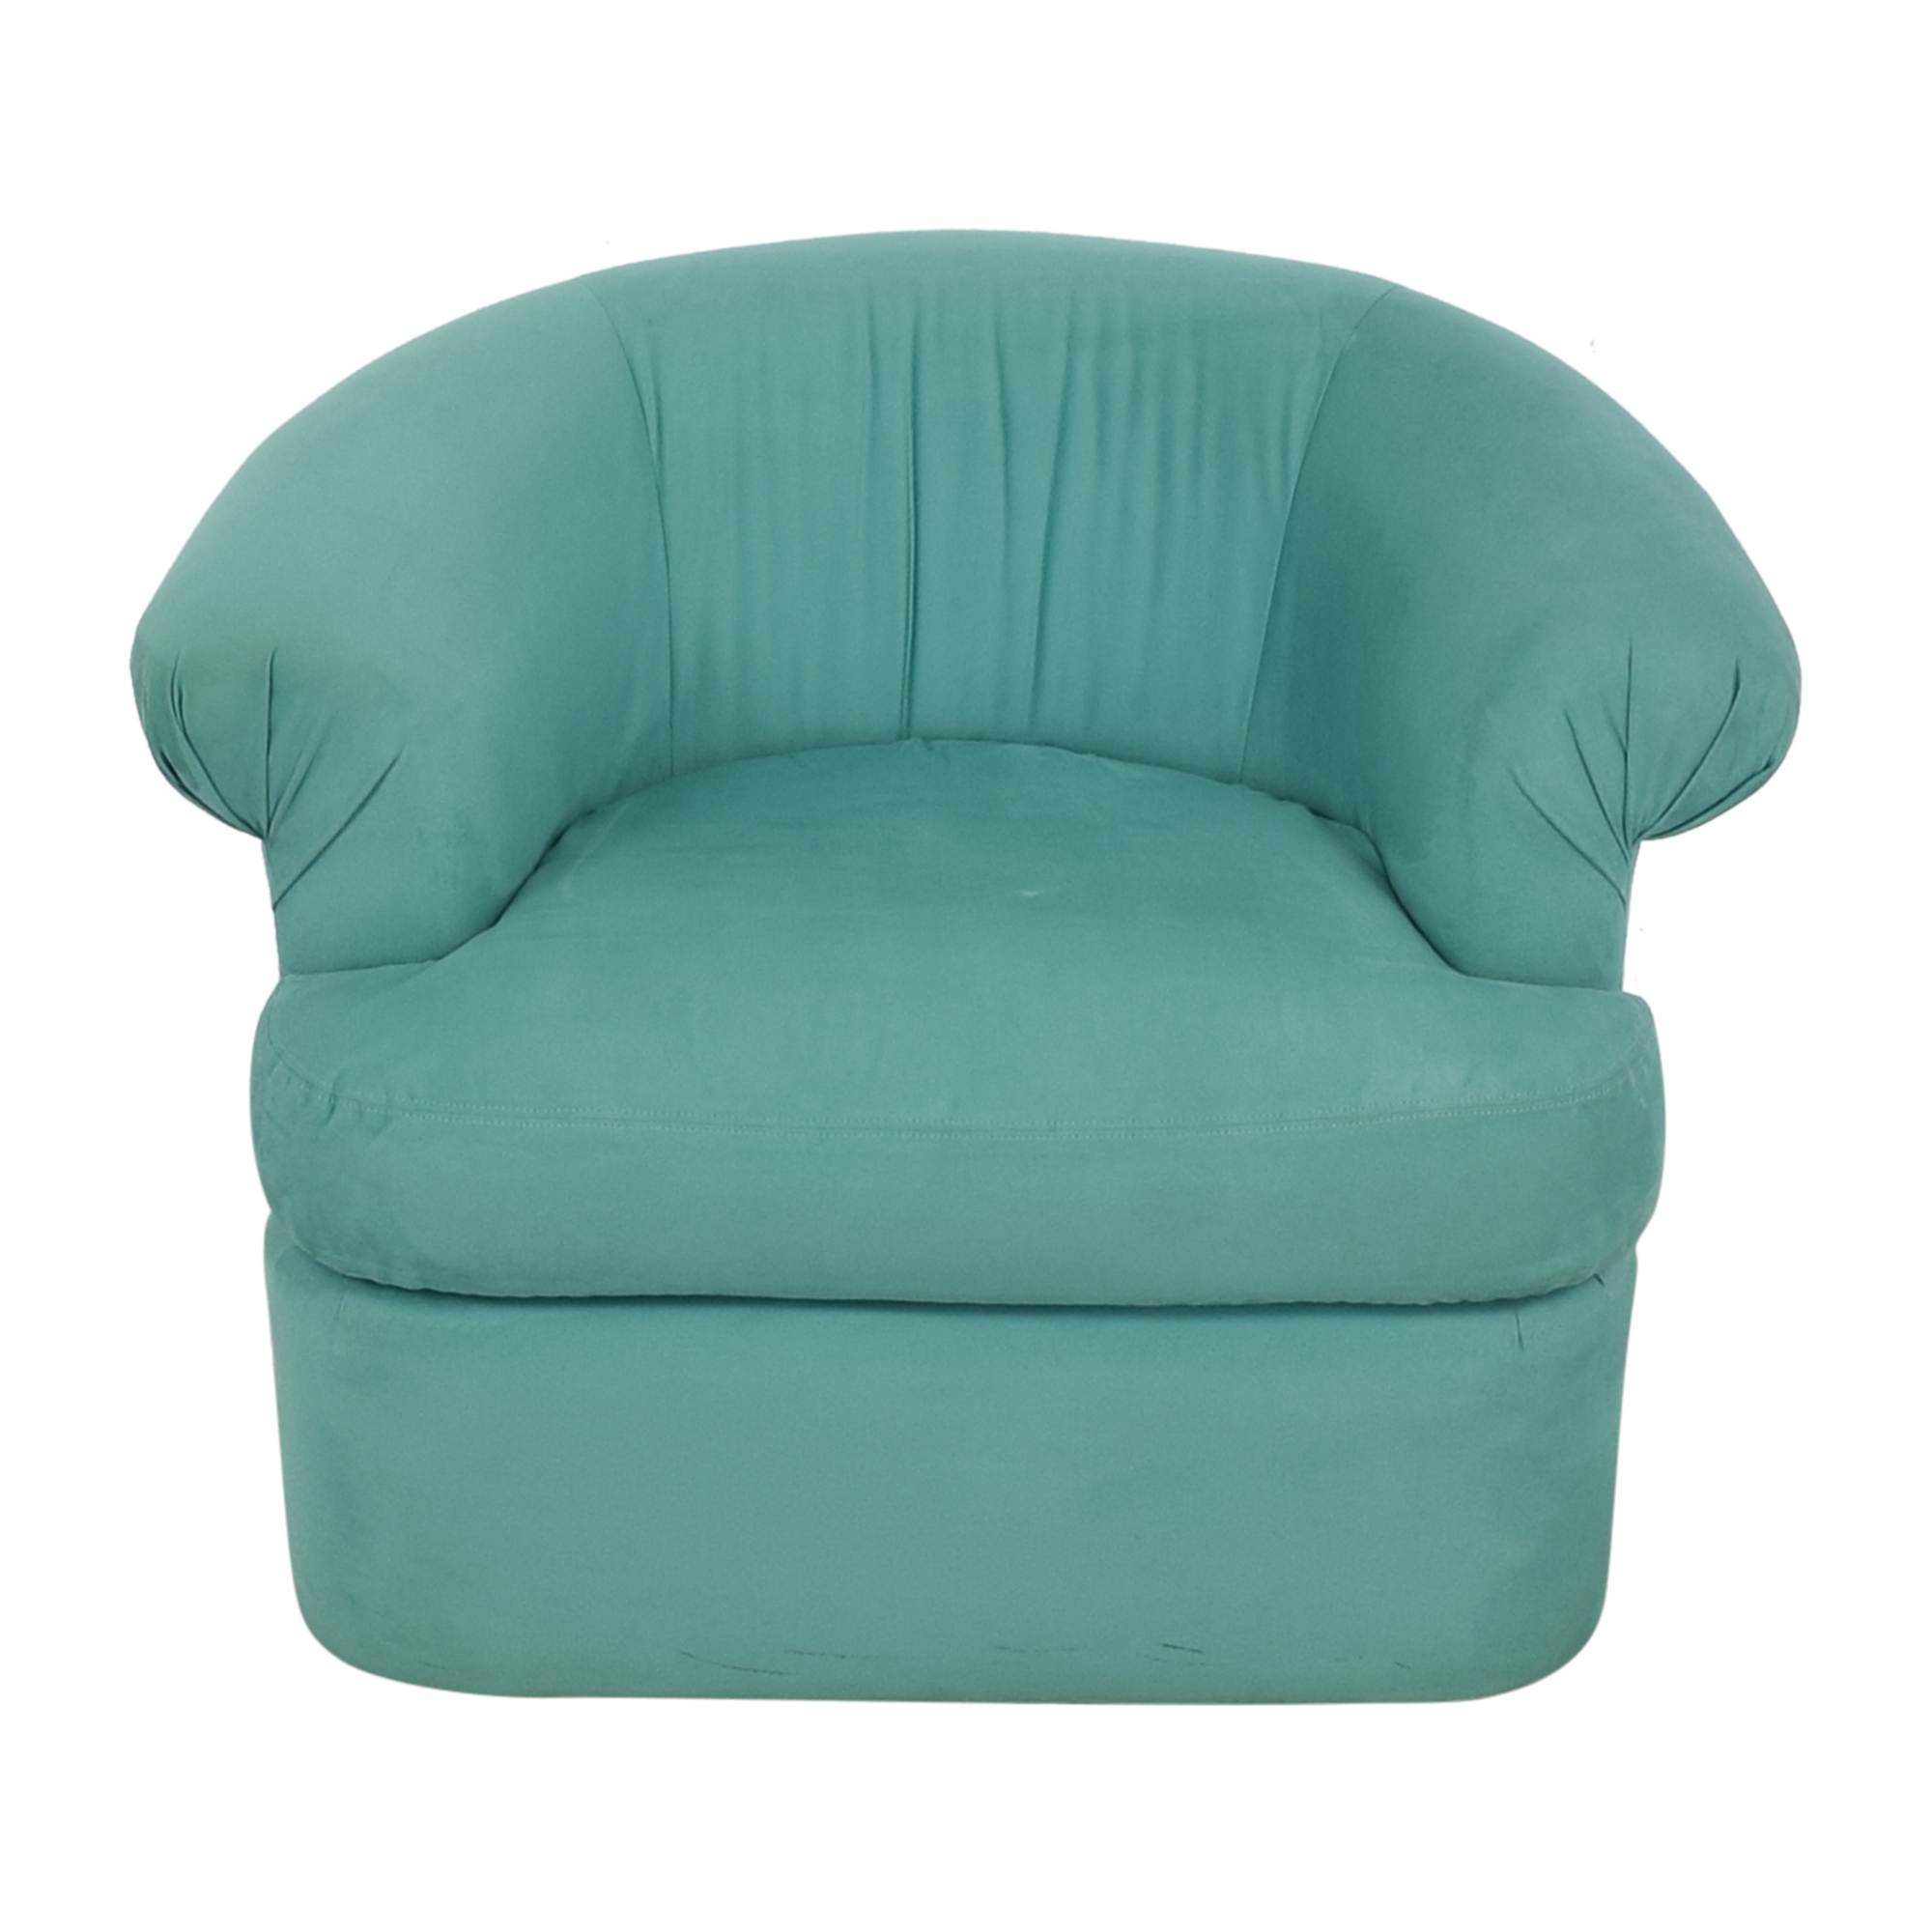 buy Directional Furniture Suede Chair Directional Furniture